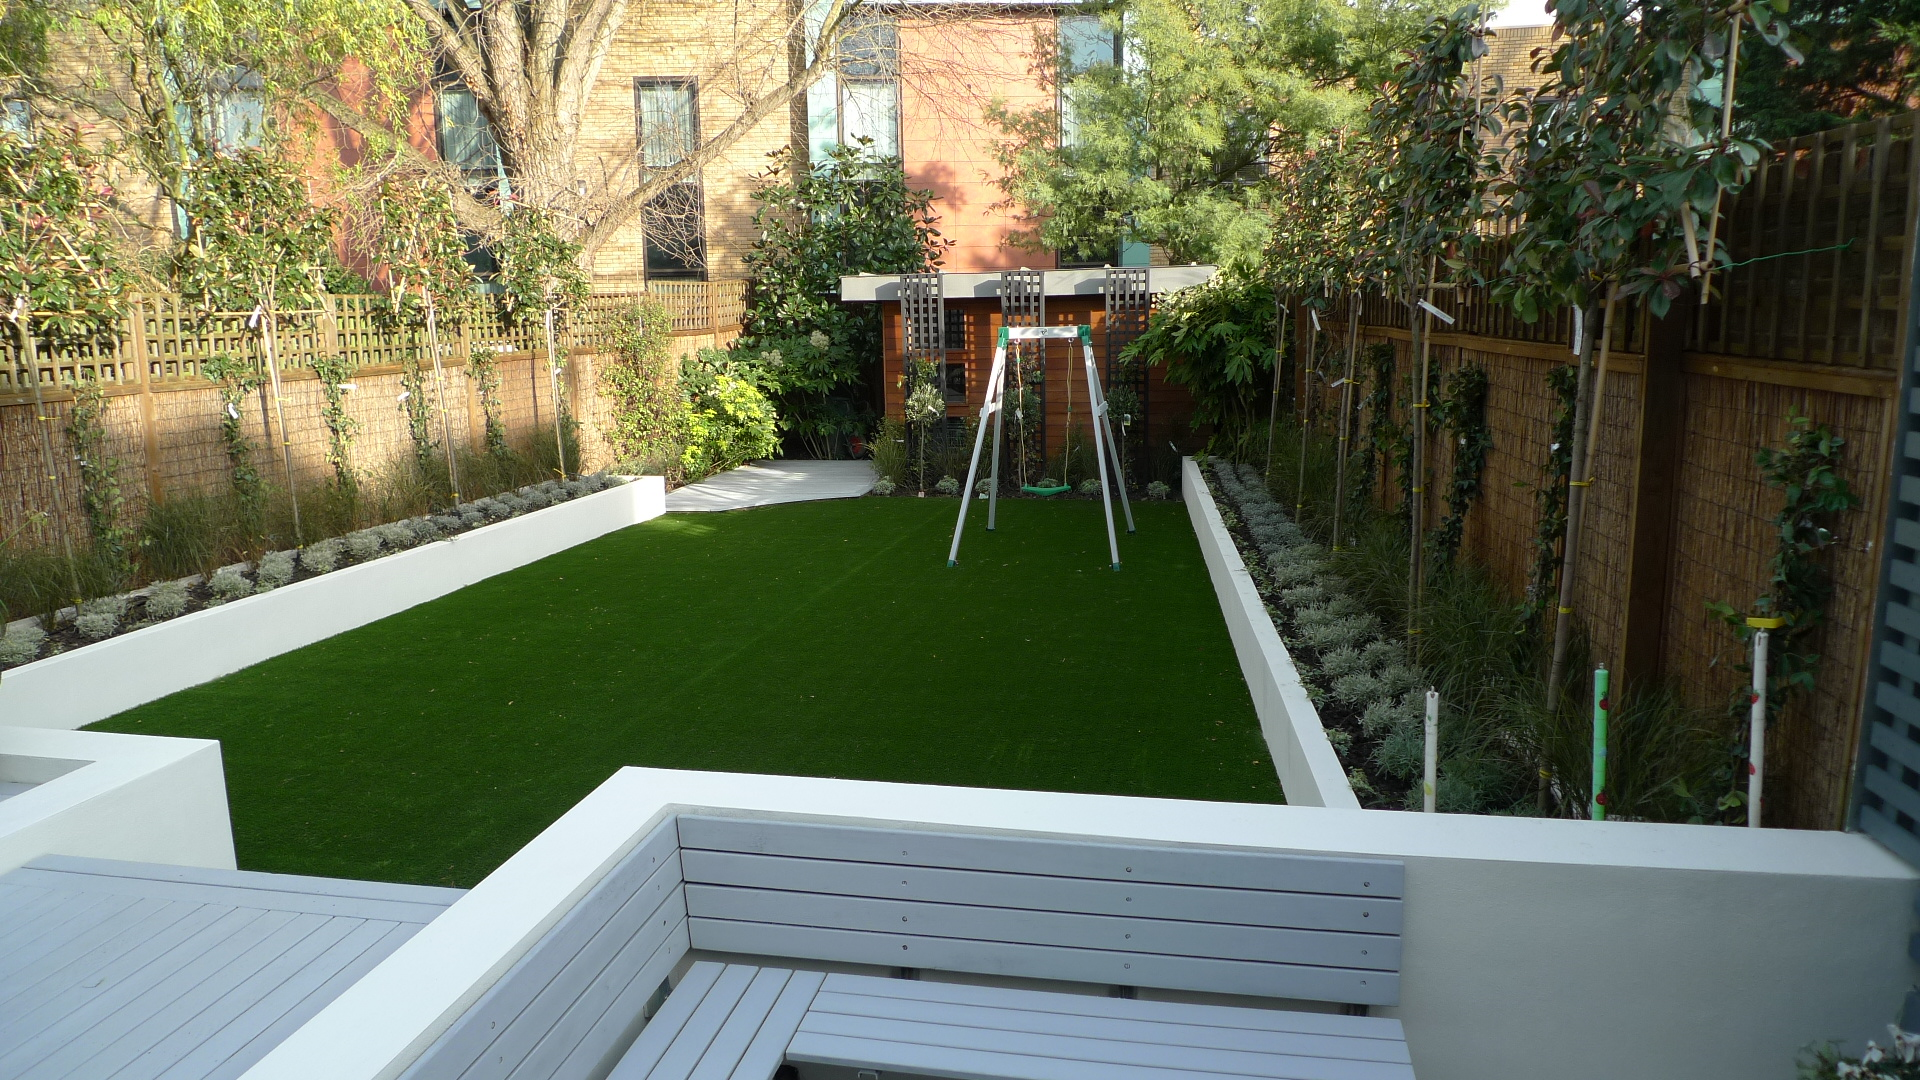 Modern garden design ideas london london garden design for Modern landscape design